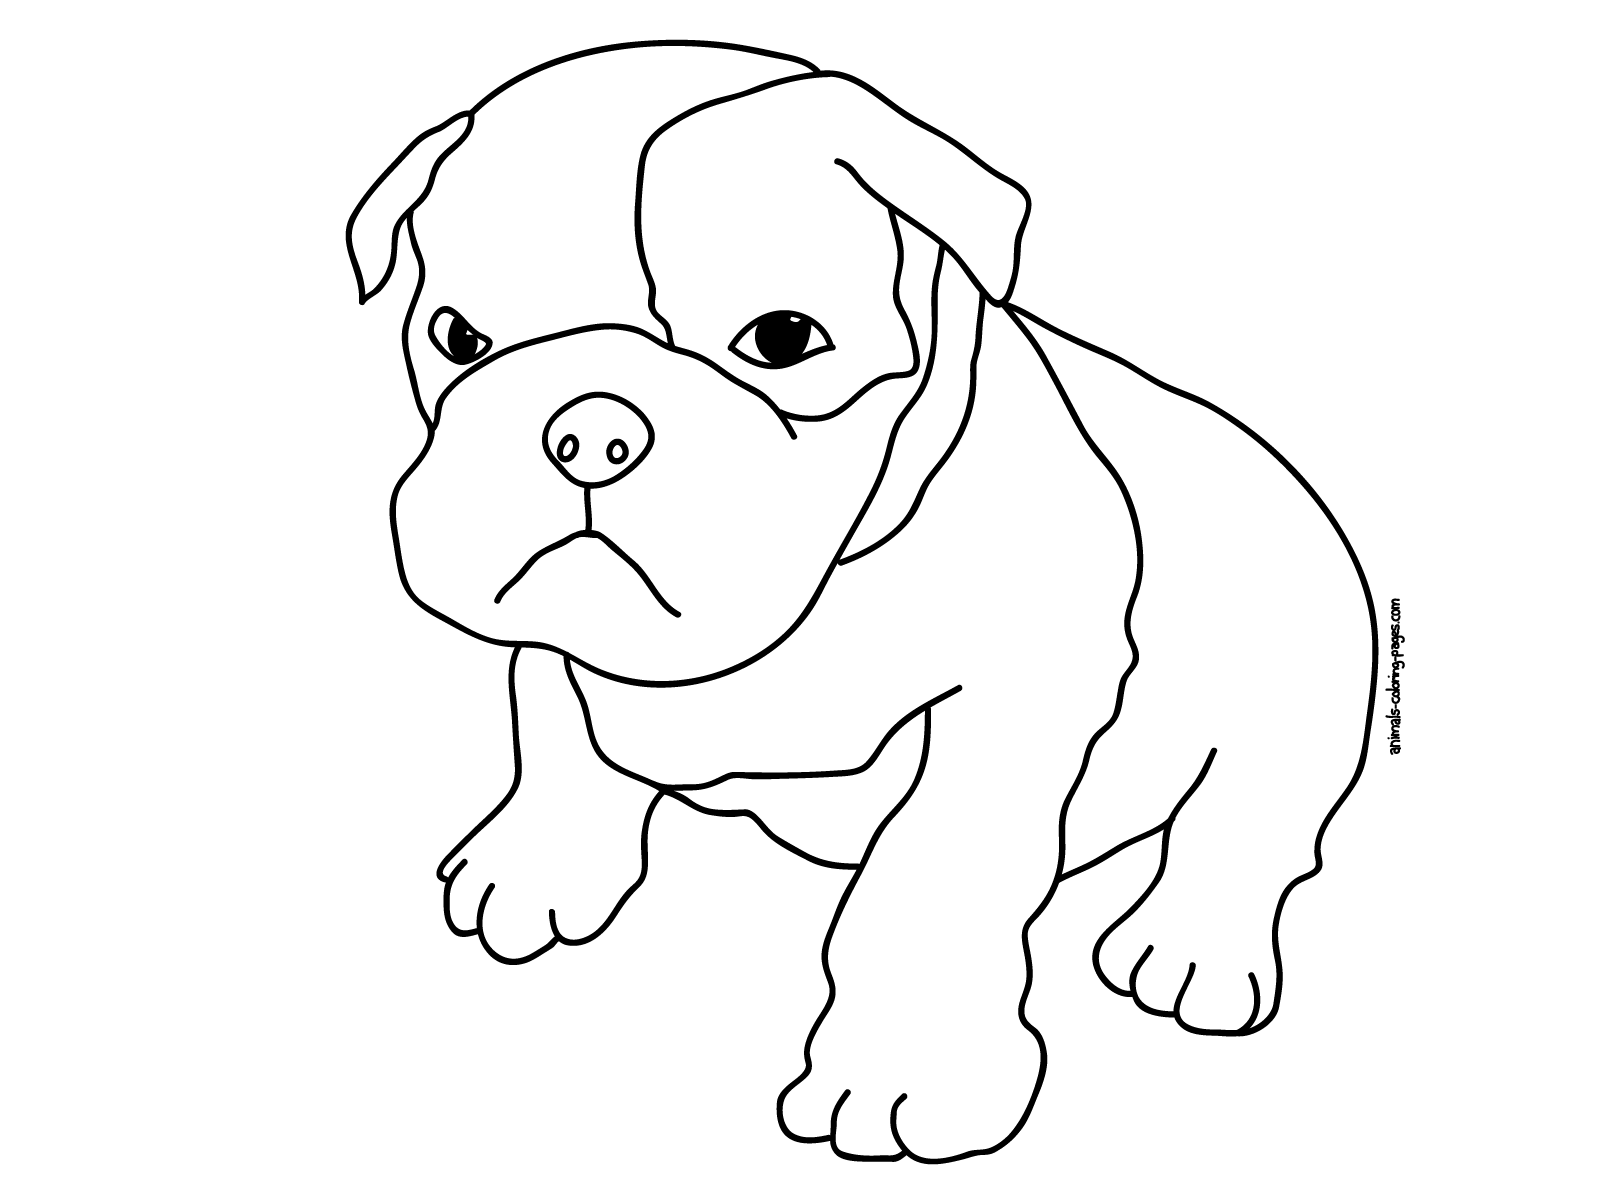 cute animal coloring pages to print coloring page of a boxer puppy - Coloring Pages Animals